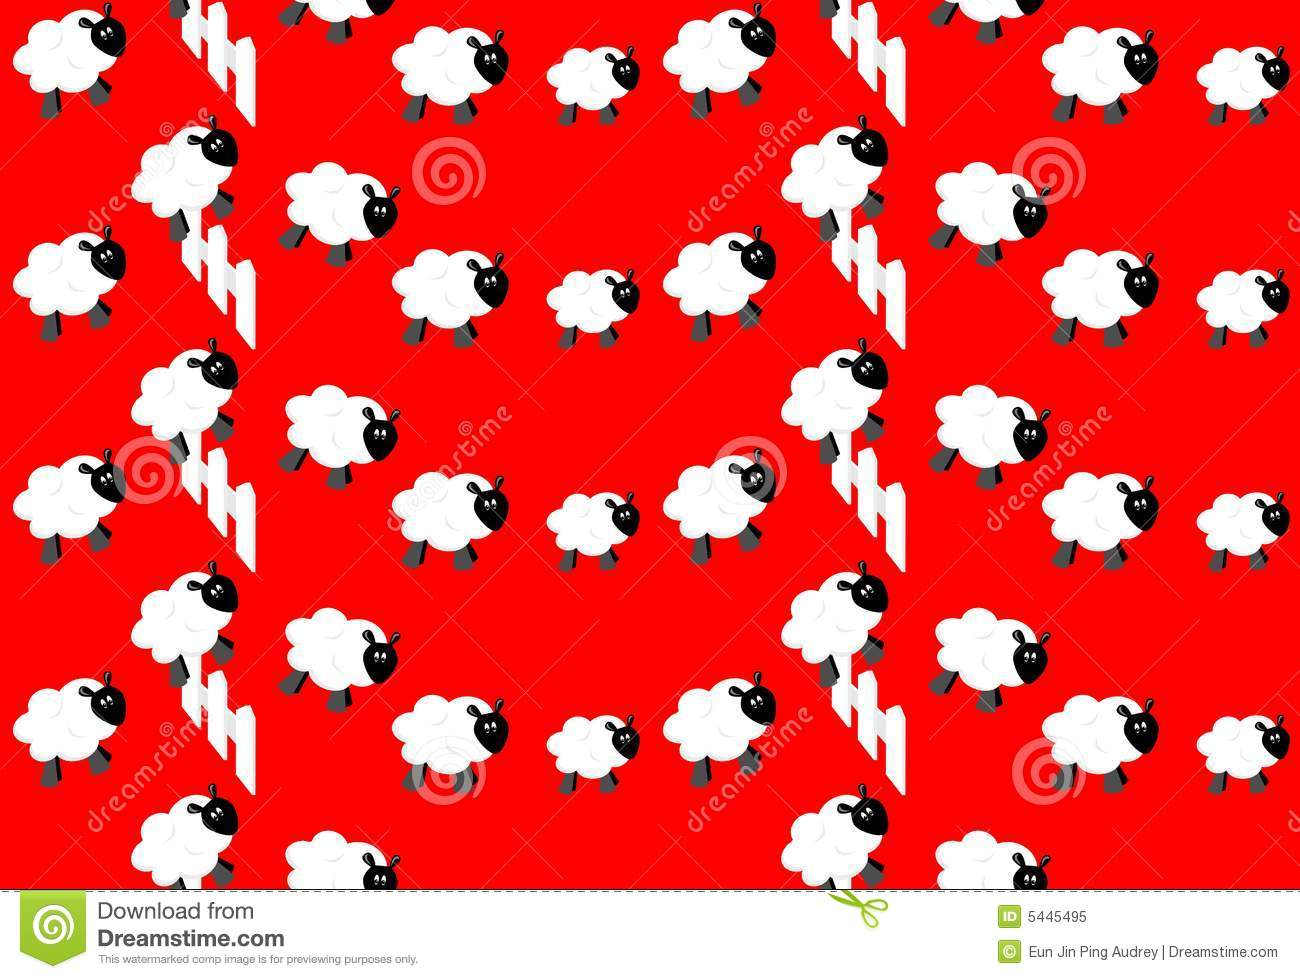 Counting Sheep Wallpaper Stock Vector Illustration Of Fence